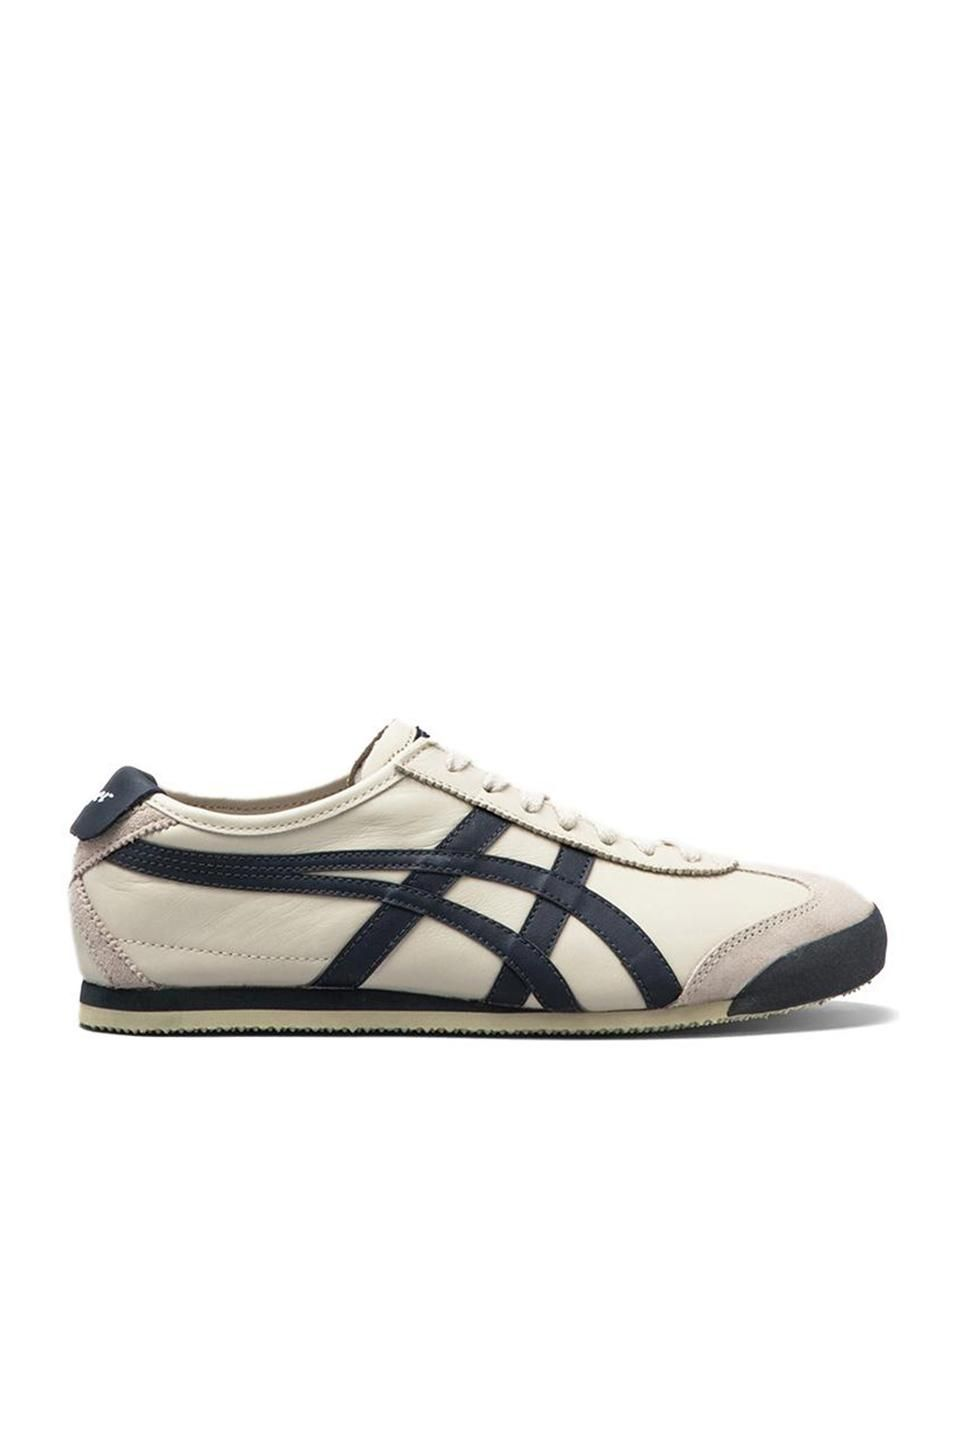 onitsuka tiger mexico 66 india ink stain